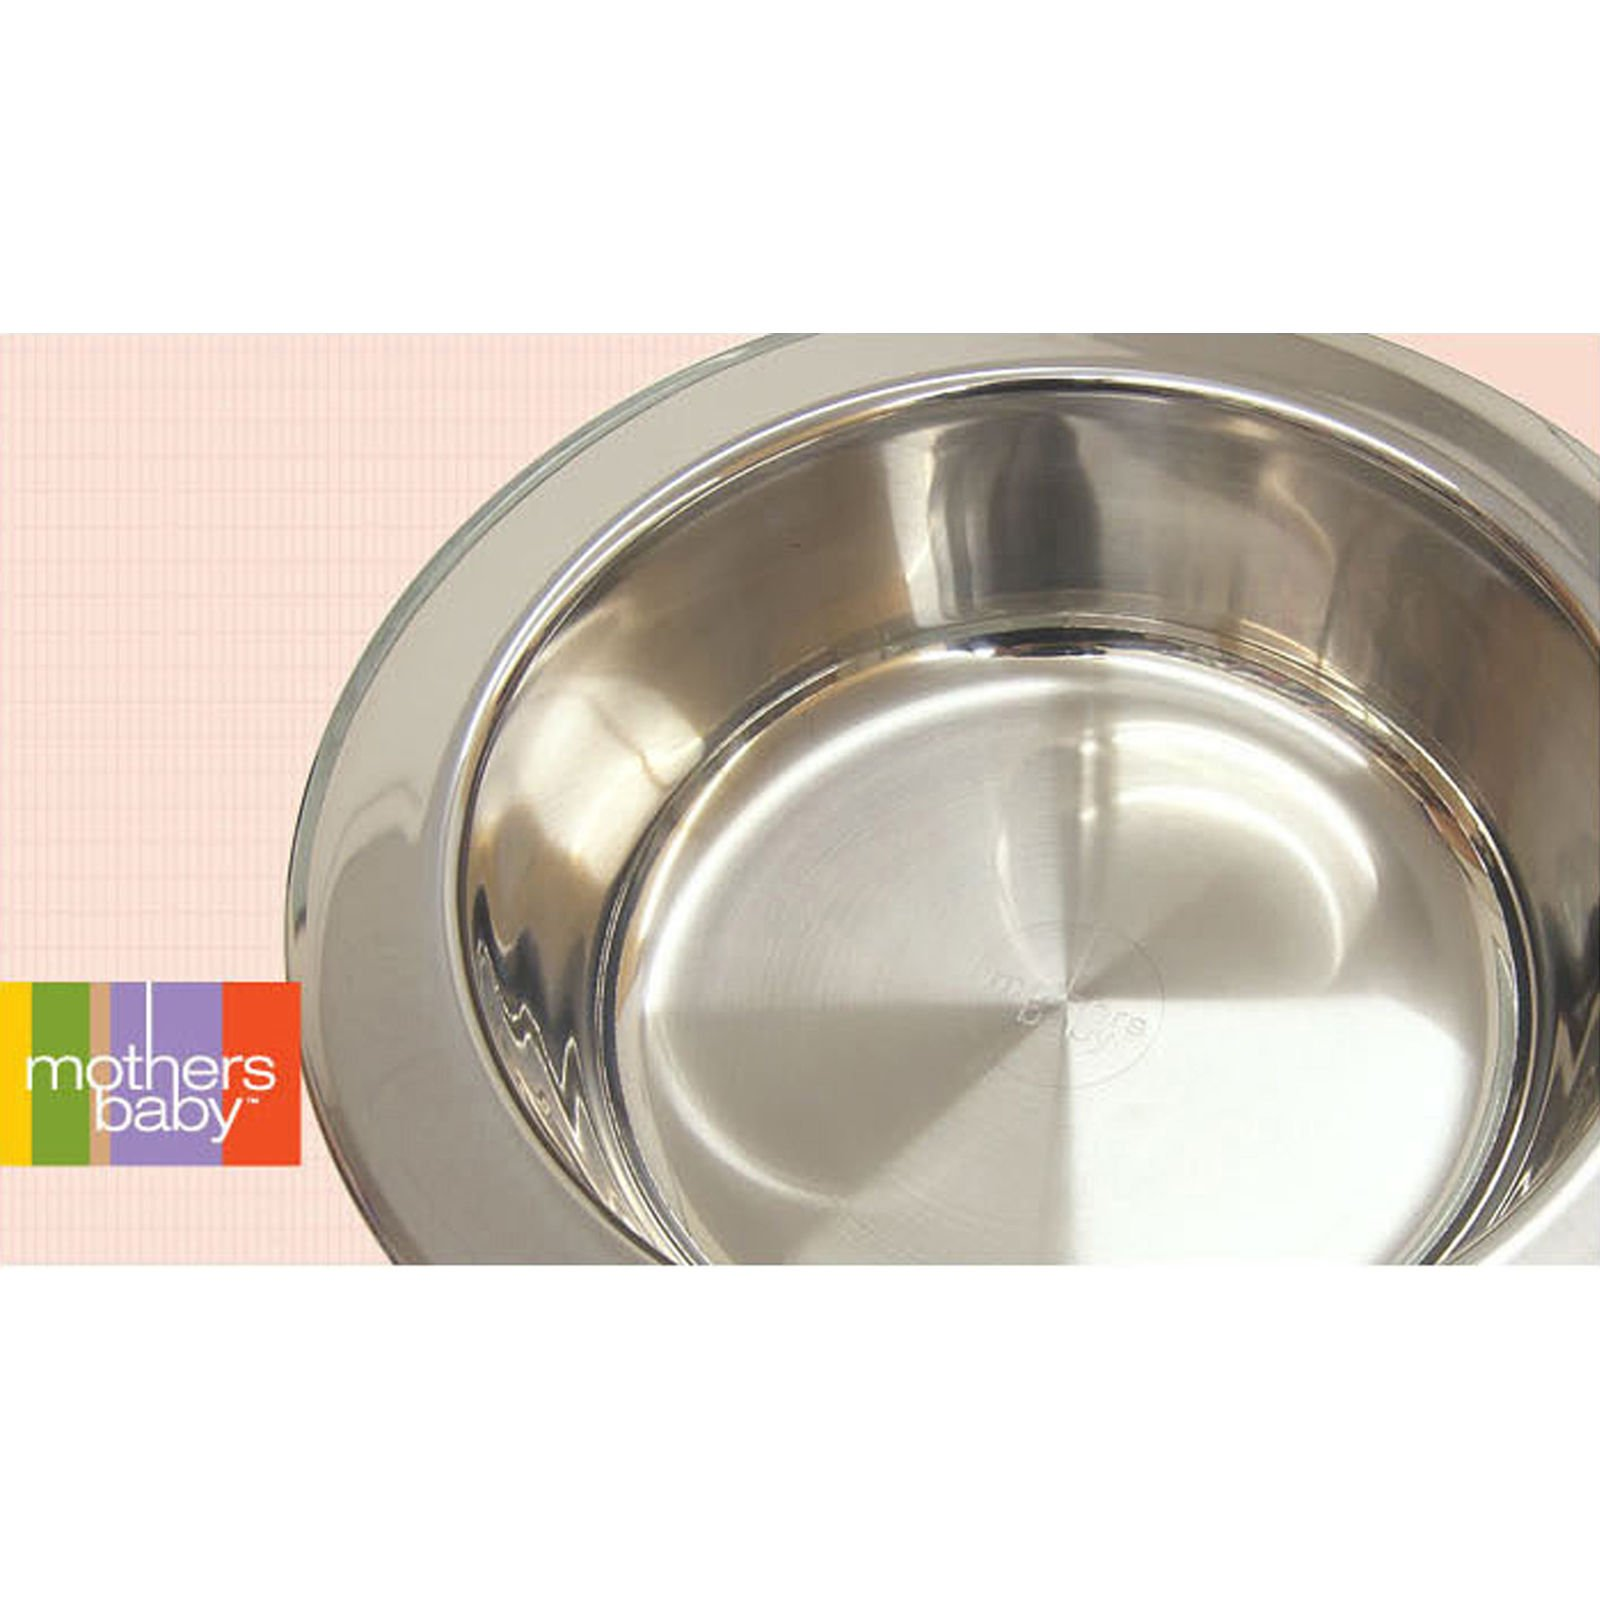 Mothers Baby Stainless Steel Sitz Bath for Pregnant Women Hygienic Hip Bath (Luxury Type+Cushion)